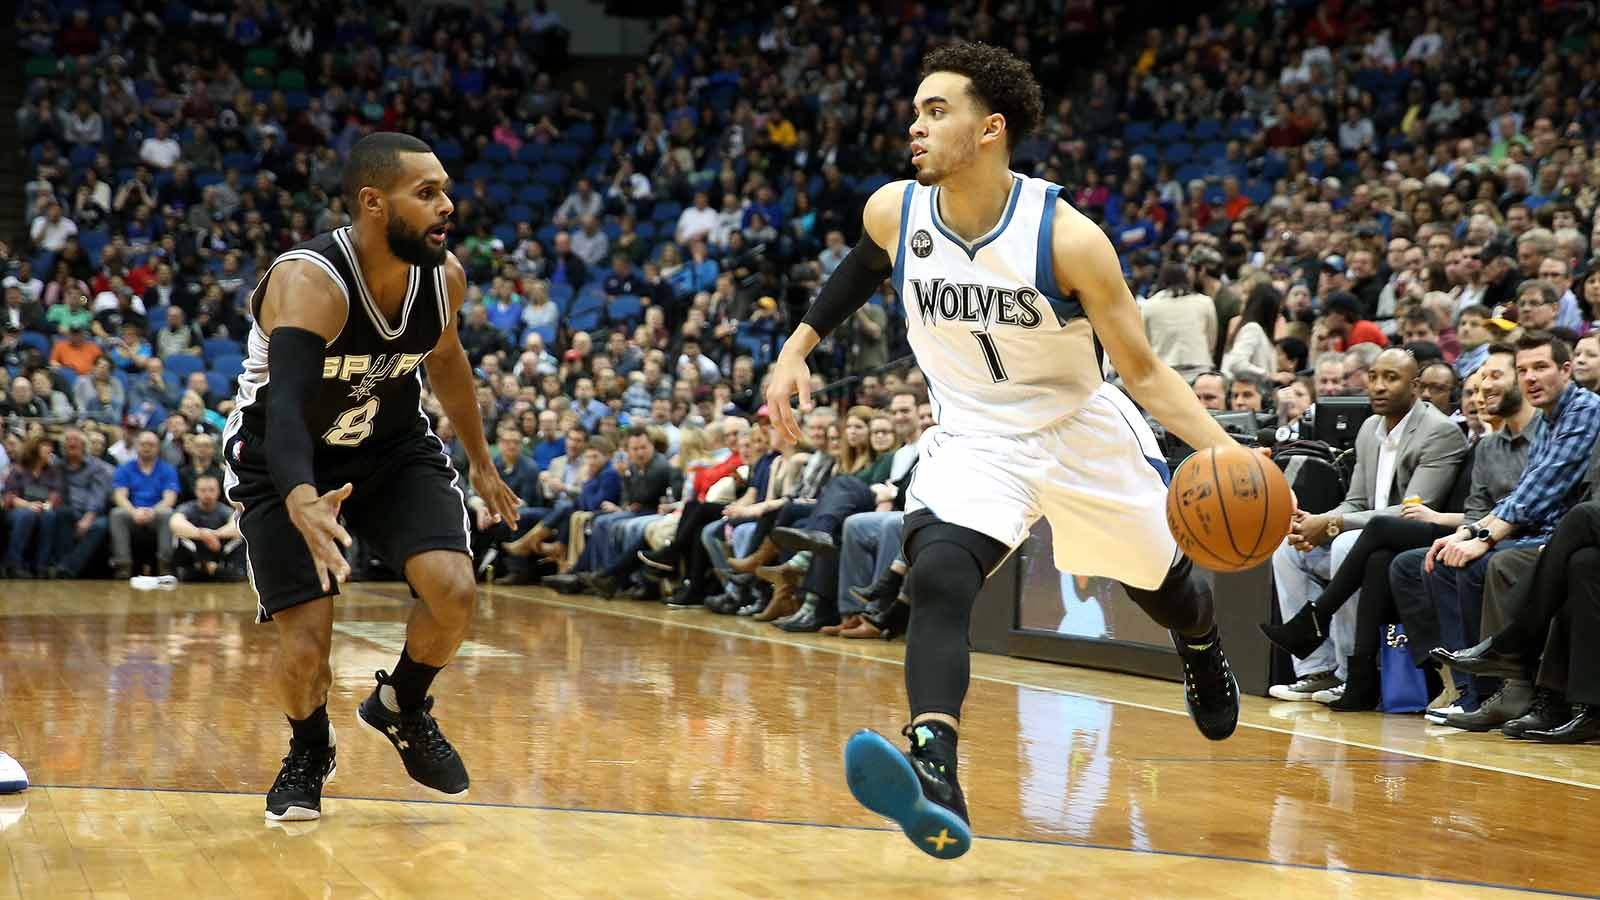 Twi-lights: Wolves vs. Spurs